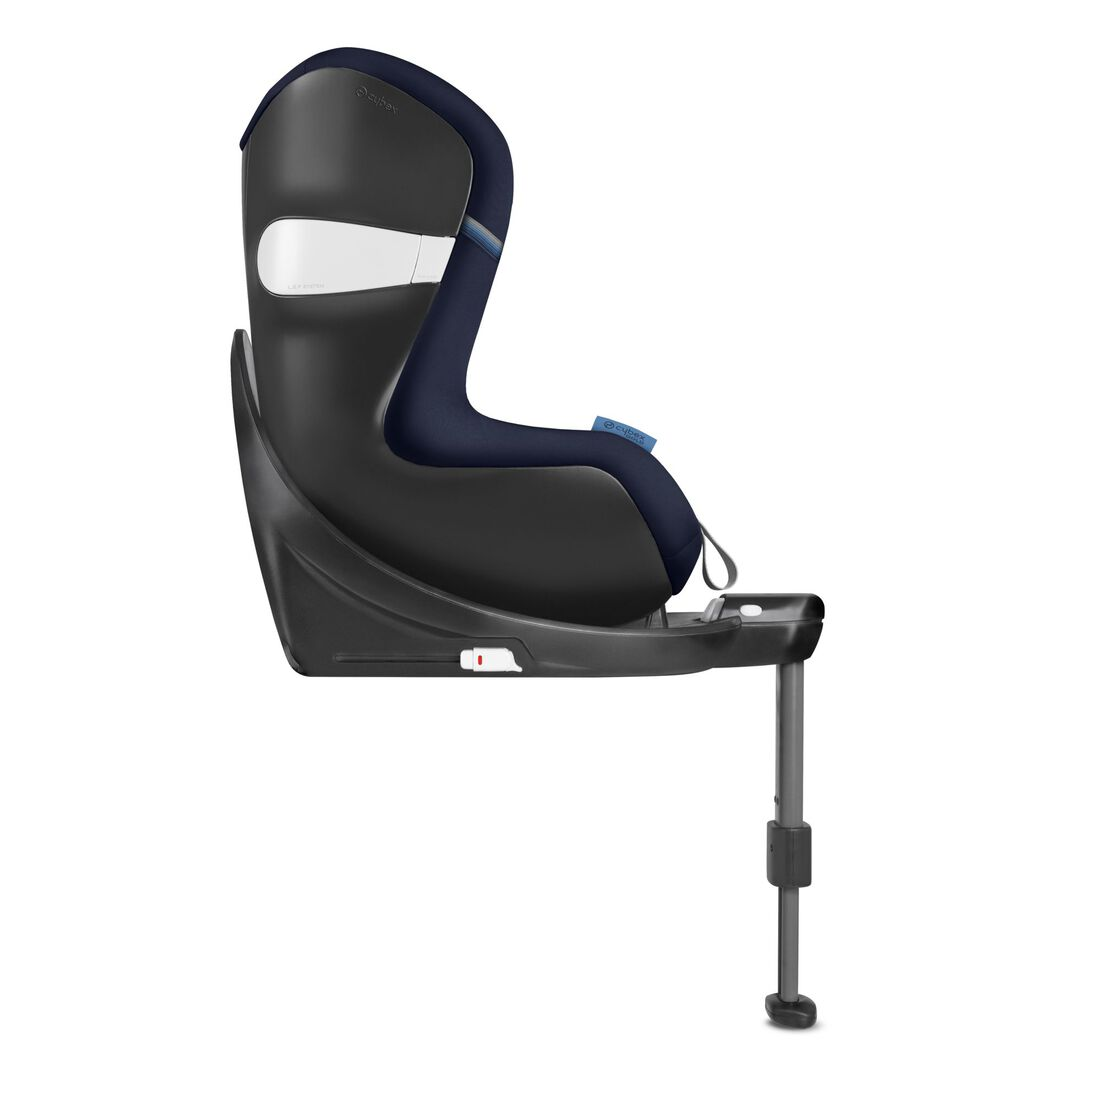 CYBEX Sirona M2 i-Size and Base M - Navy Blue in Navy Blue large image number 3